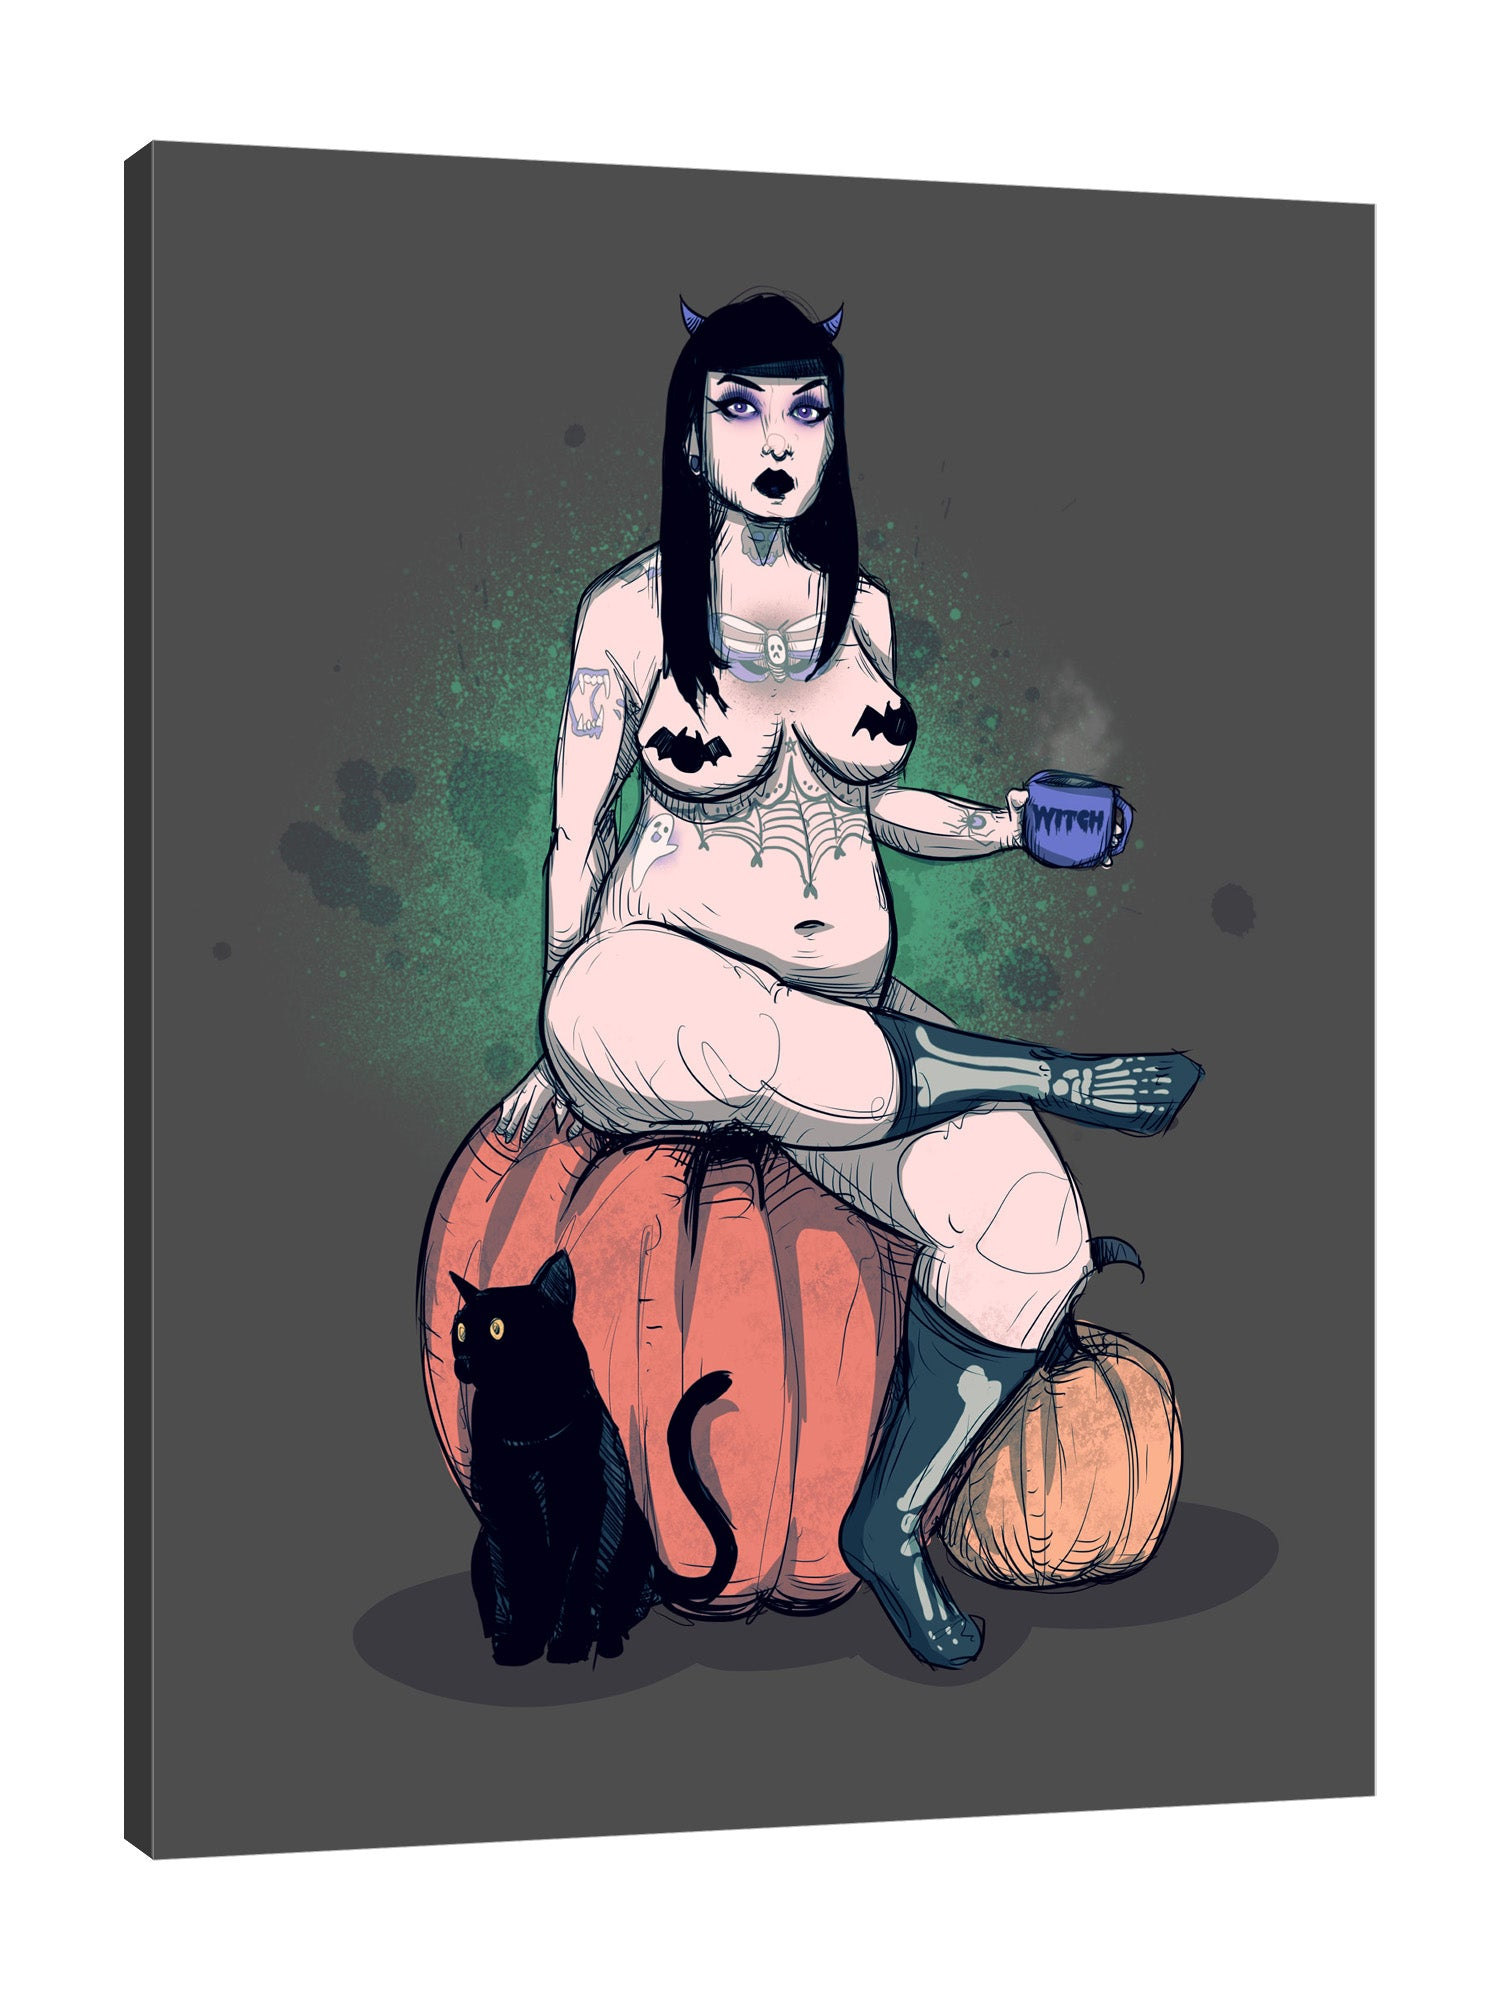 Ludwig-Van-Bacon,Vertical,3X4,Modern & Contemporary,People,Fantasy & Sci-Fi,Entertainment,Animals,halloween,woman,cosplay,erotic,lady,bats,bat,cup,cups,witch,witches,cats,cat,animals,animal,socks,sock,pumpkins,pumpkin,Mint Green,White,Beige,Teal Blue,Black,Gray,Charcoal Gray,Blue